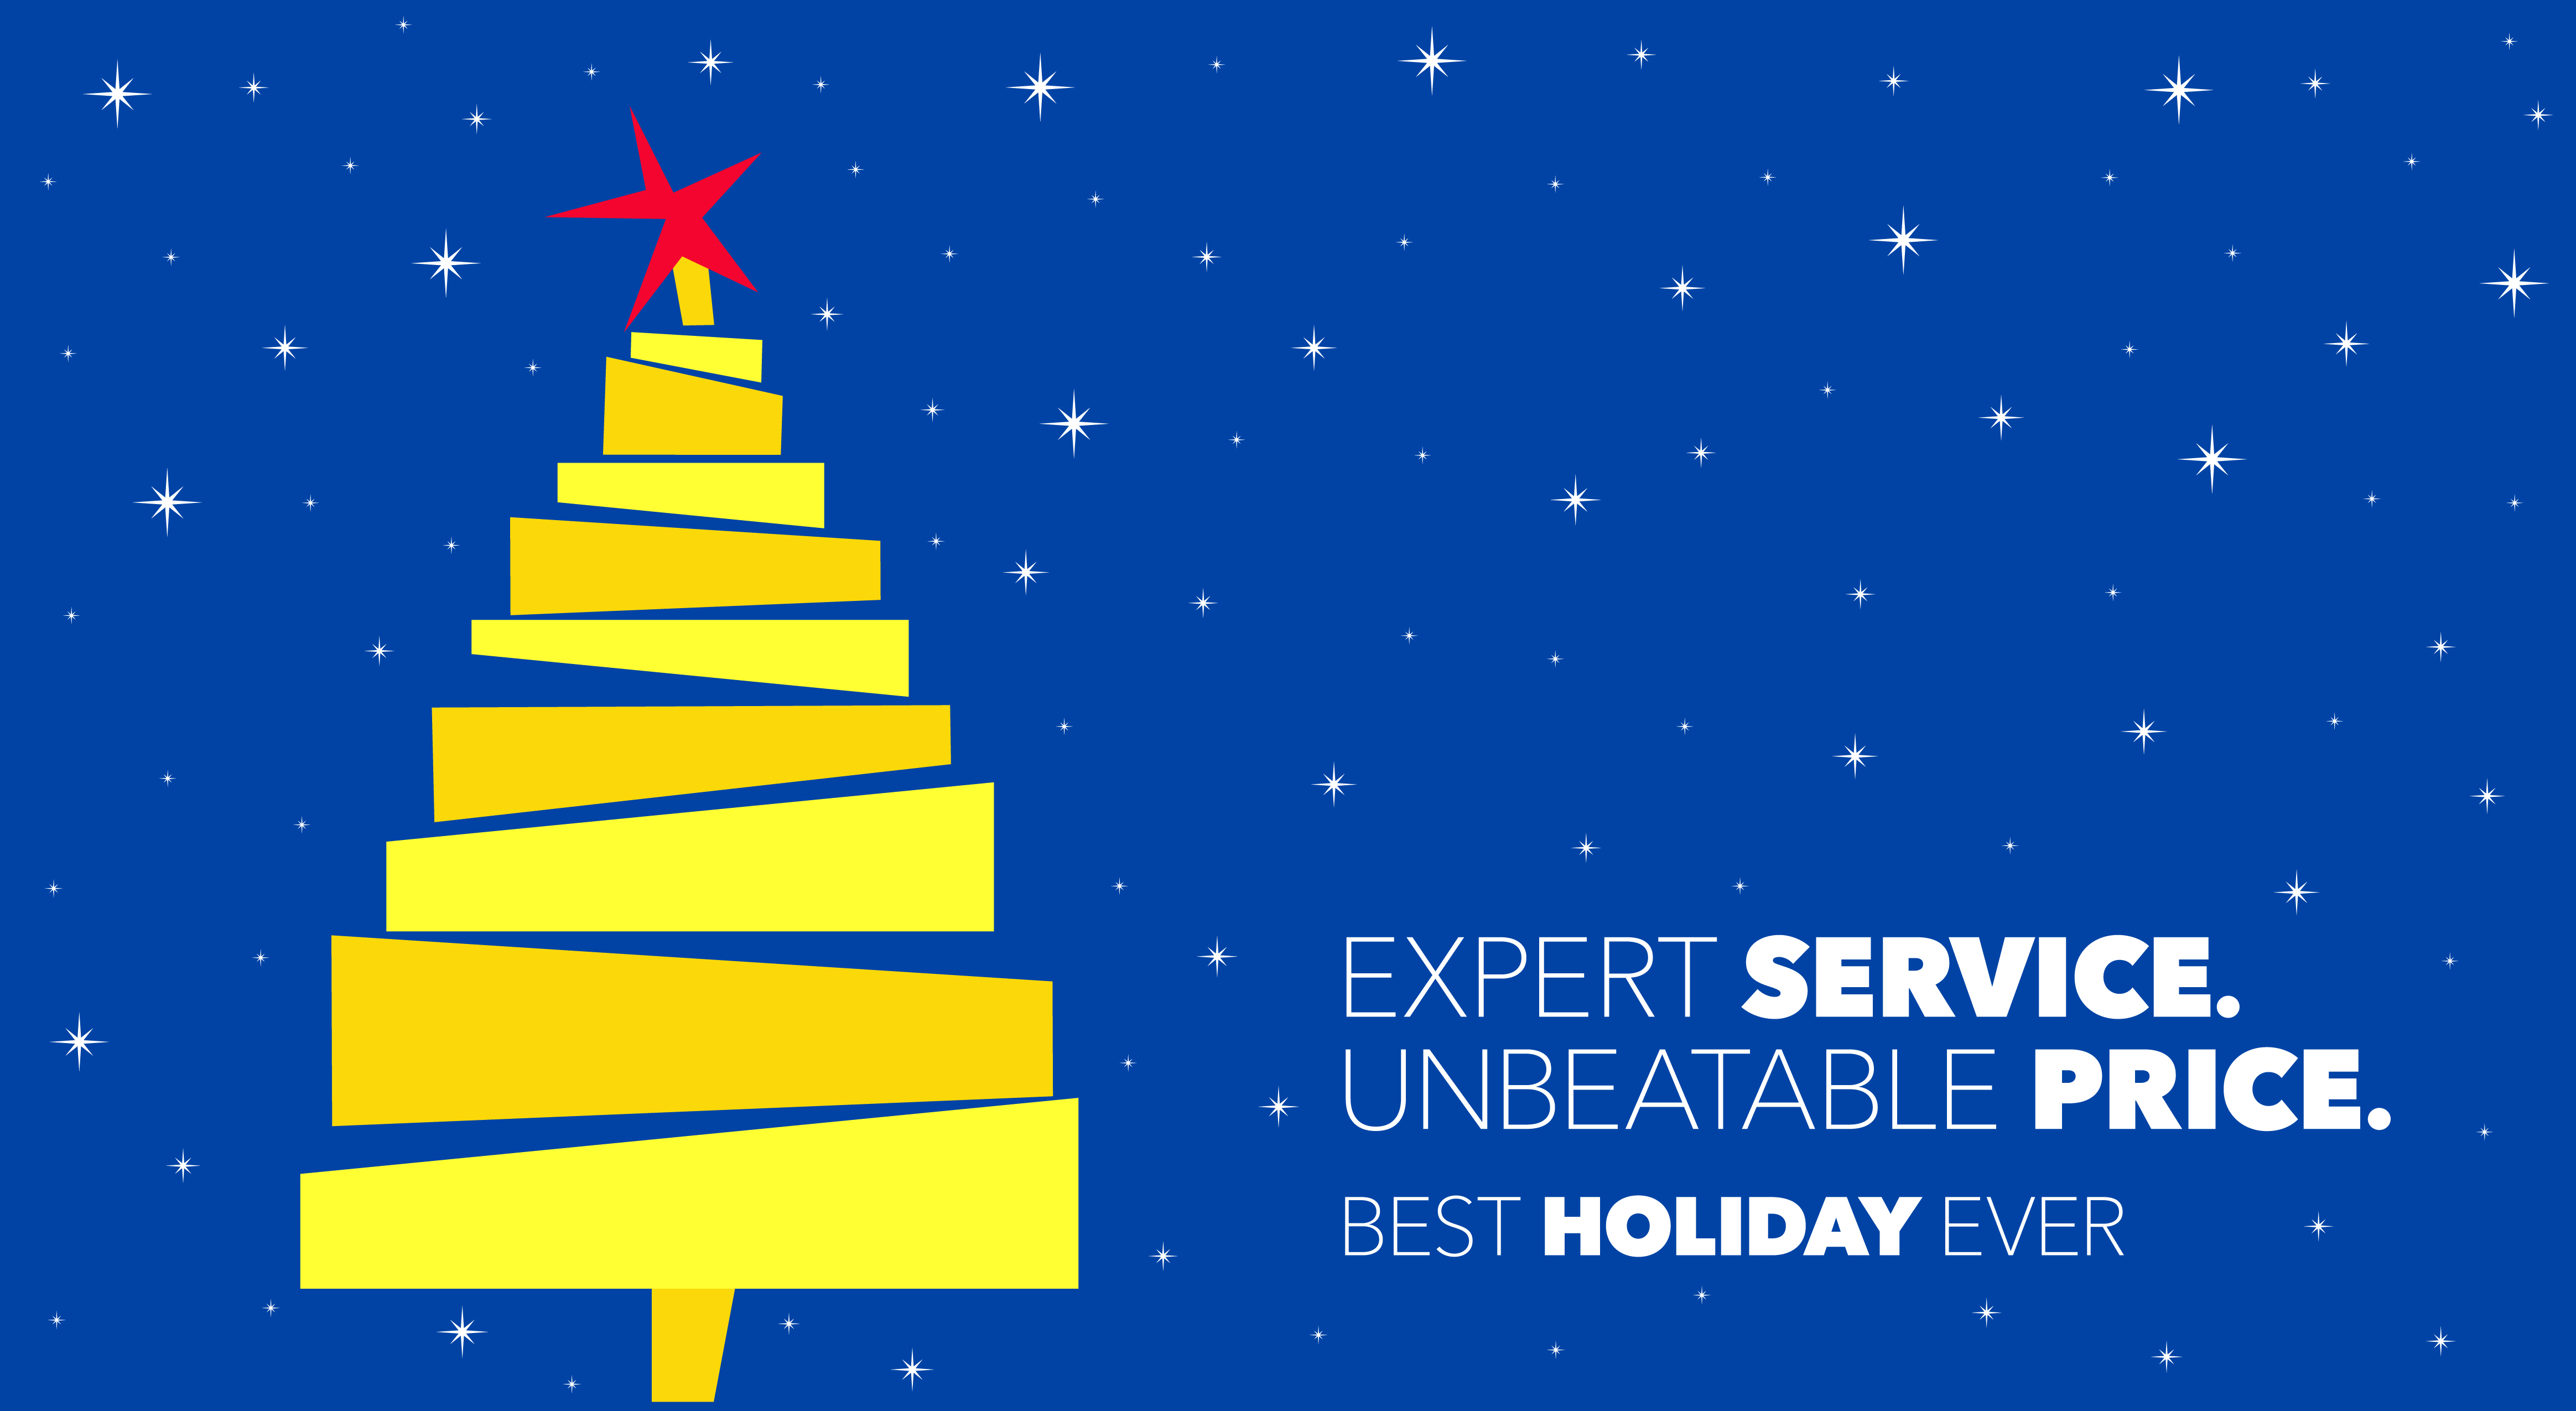 Get the Hottest Gifts from Best Buy! #HintingSeason